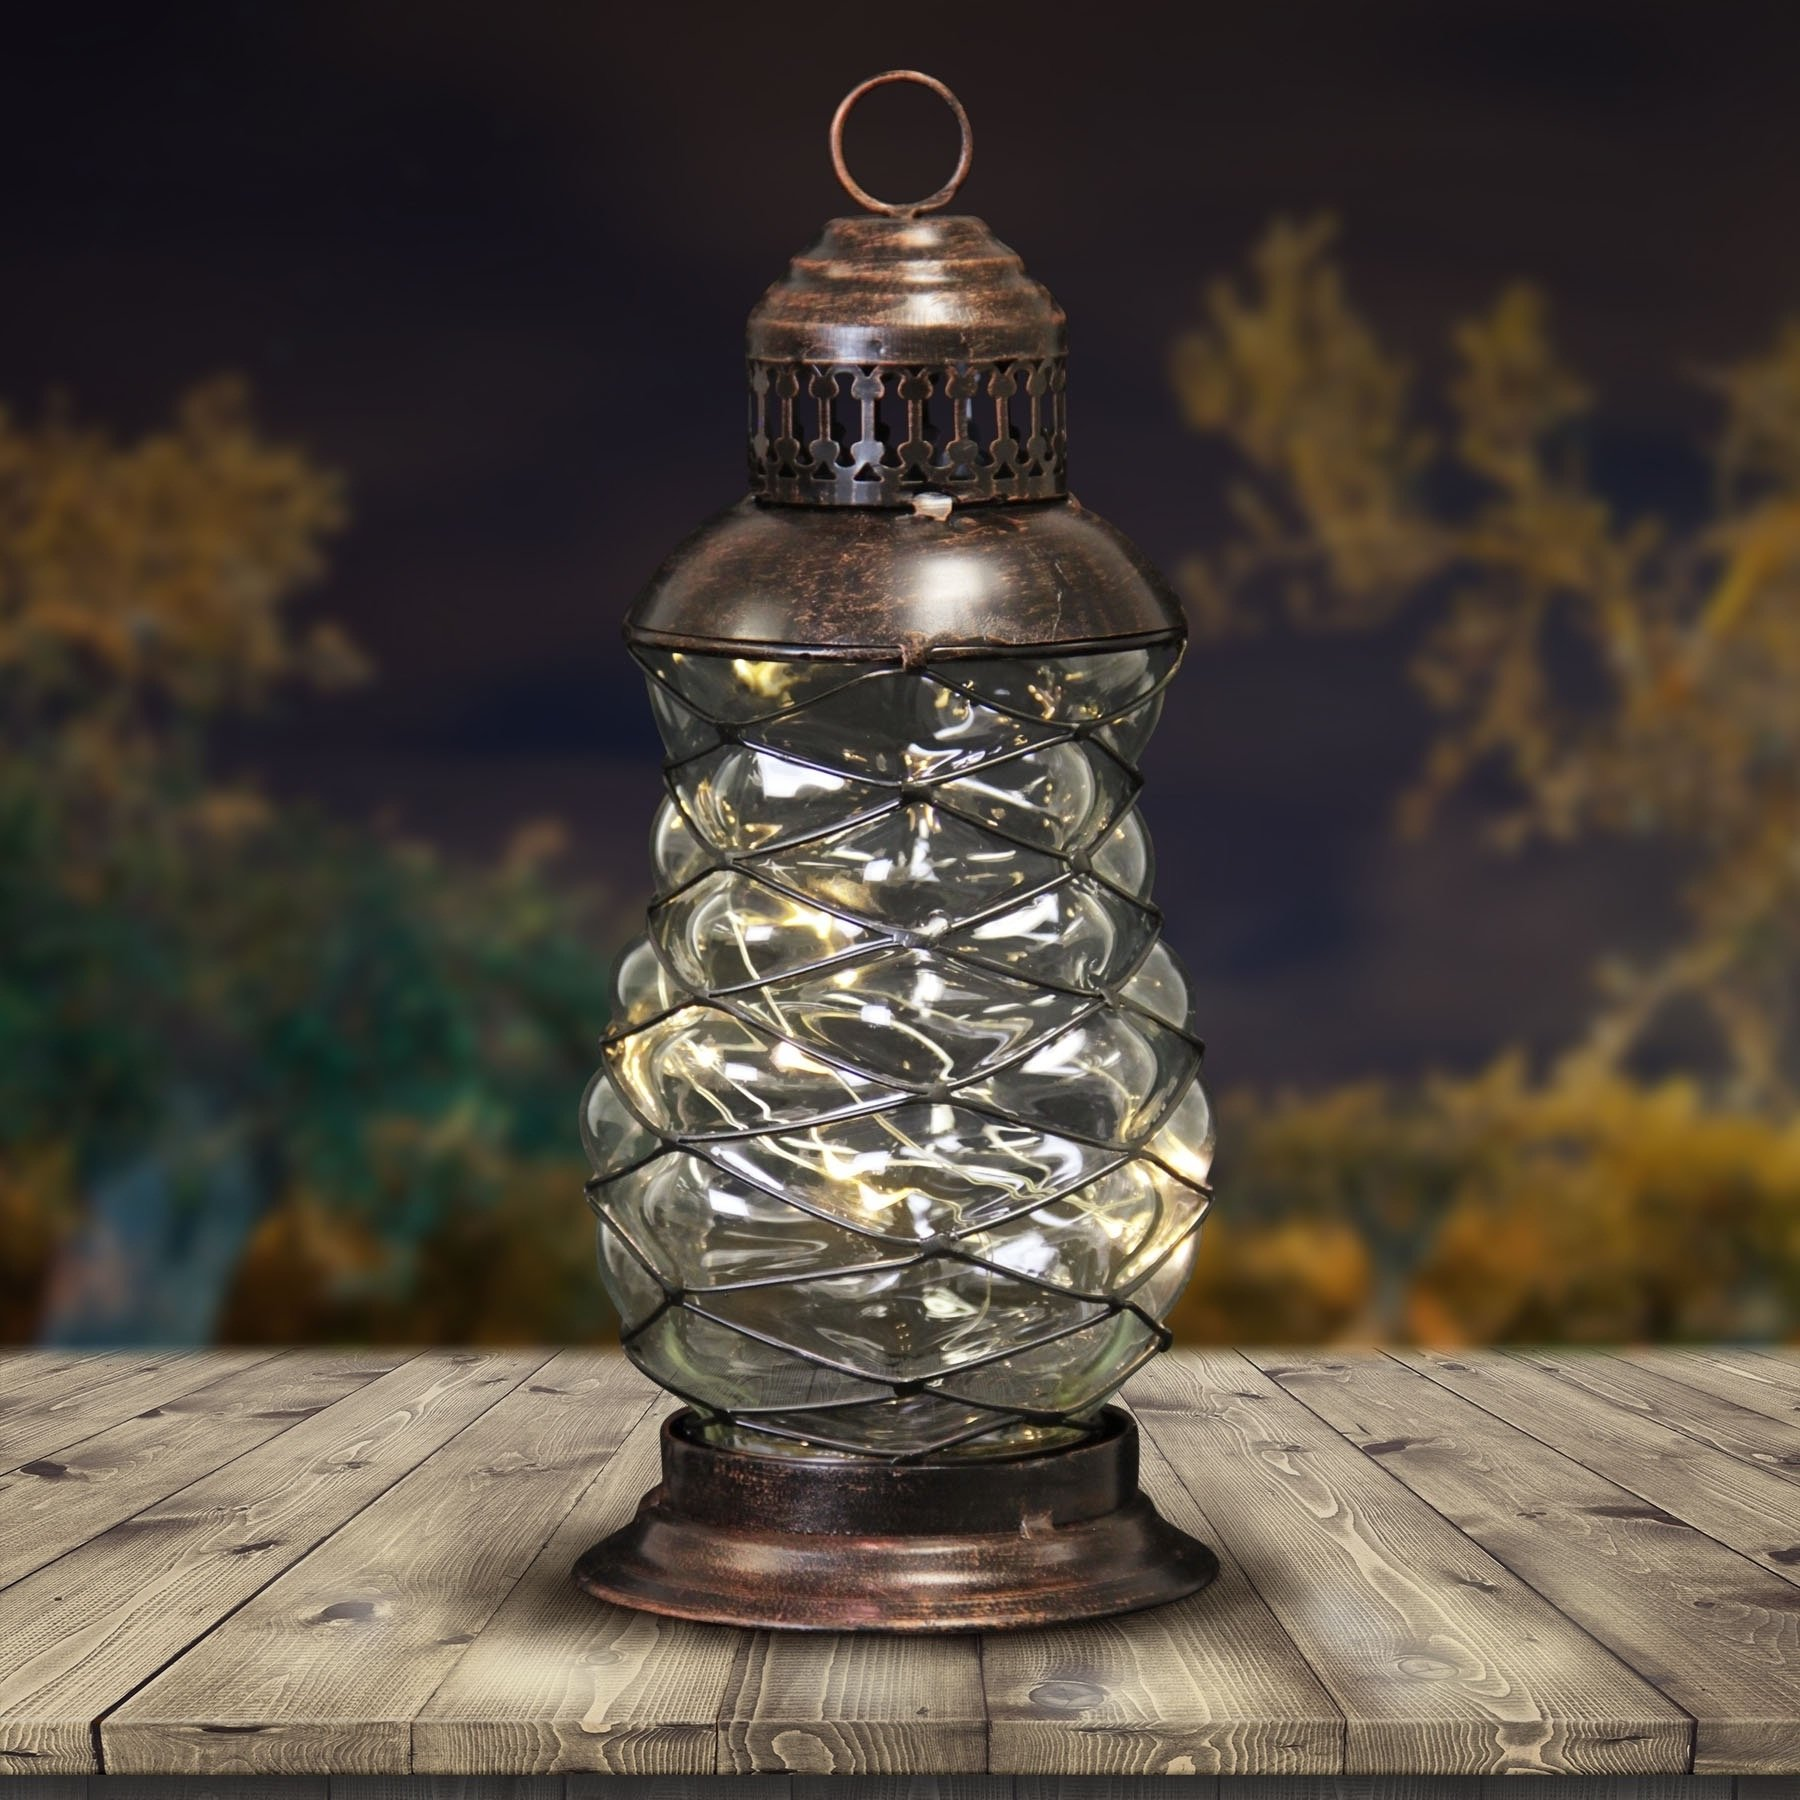 Add Some Magic and Charm to Your Garden with this Elegant 10'' Solar Bronze LED Firefly Lantern,Sparks Warmth and Delight When its String of LED Fireflies Automatically Illuminate at Dusk